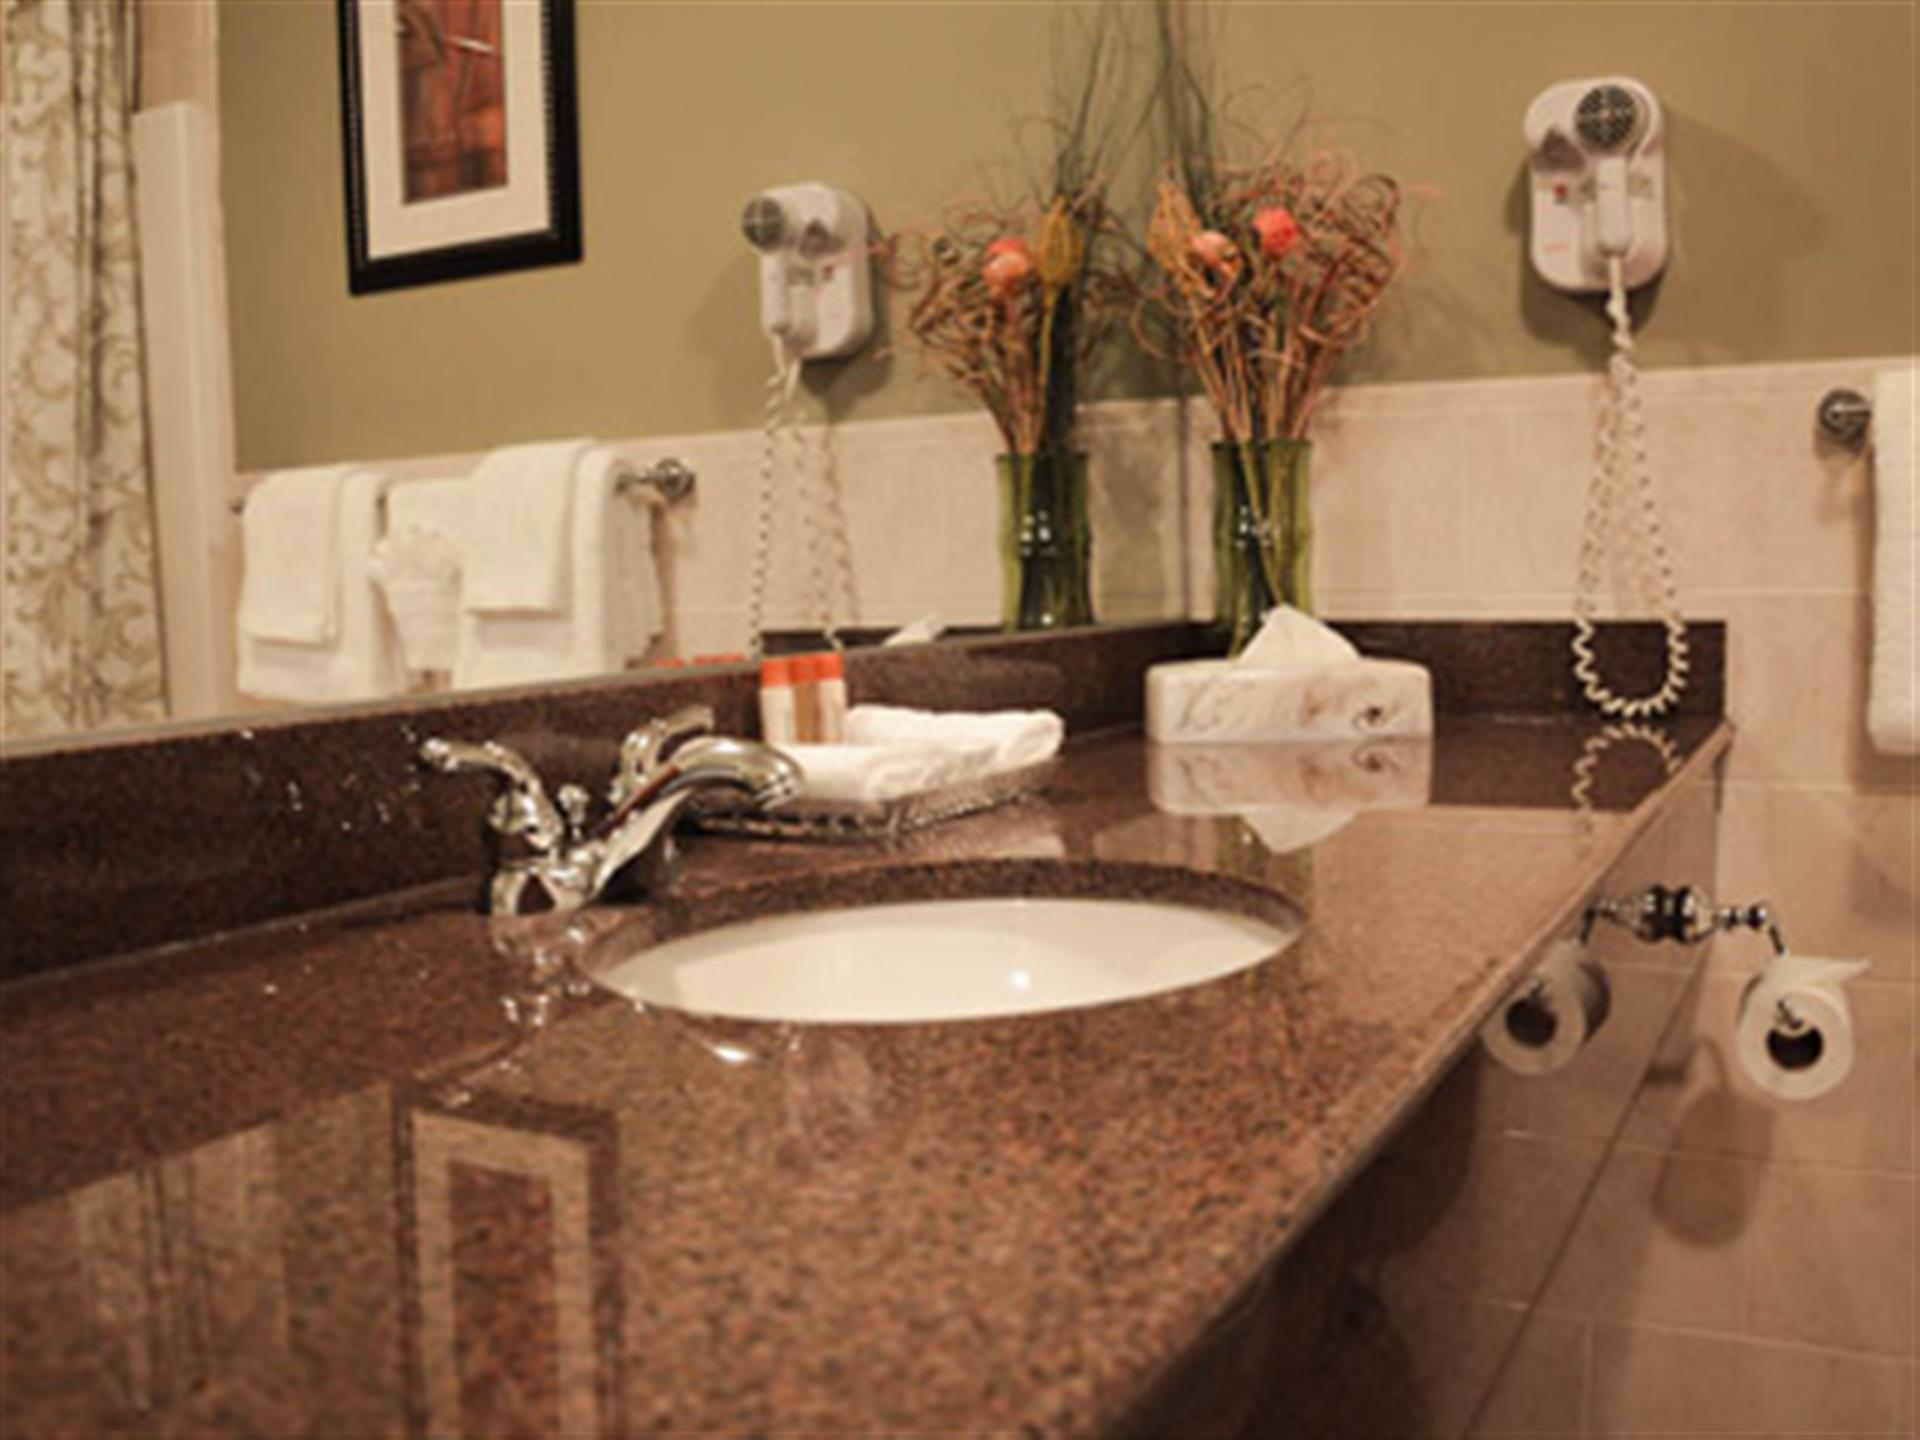 view of bathroom counter with sink